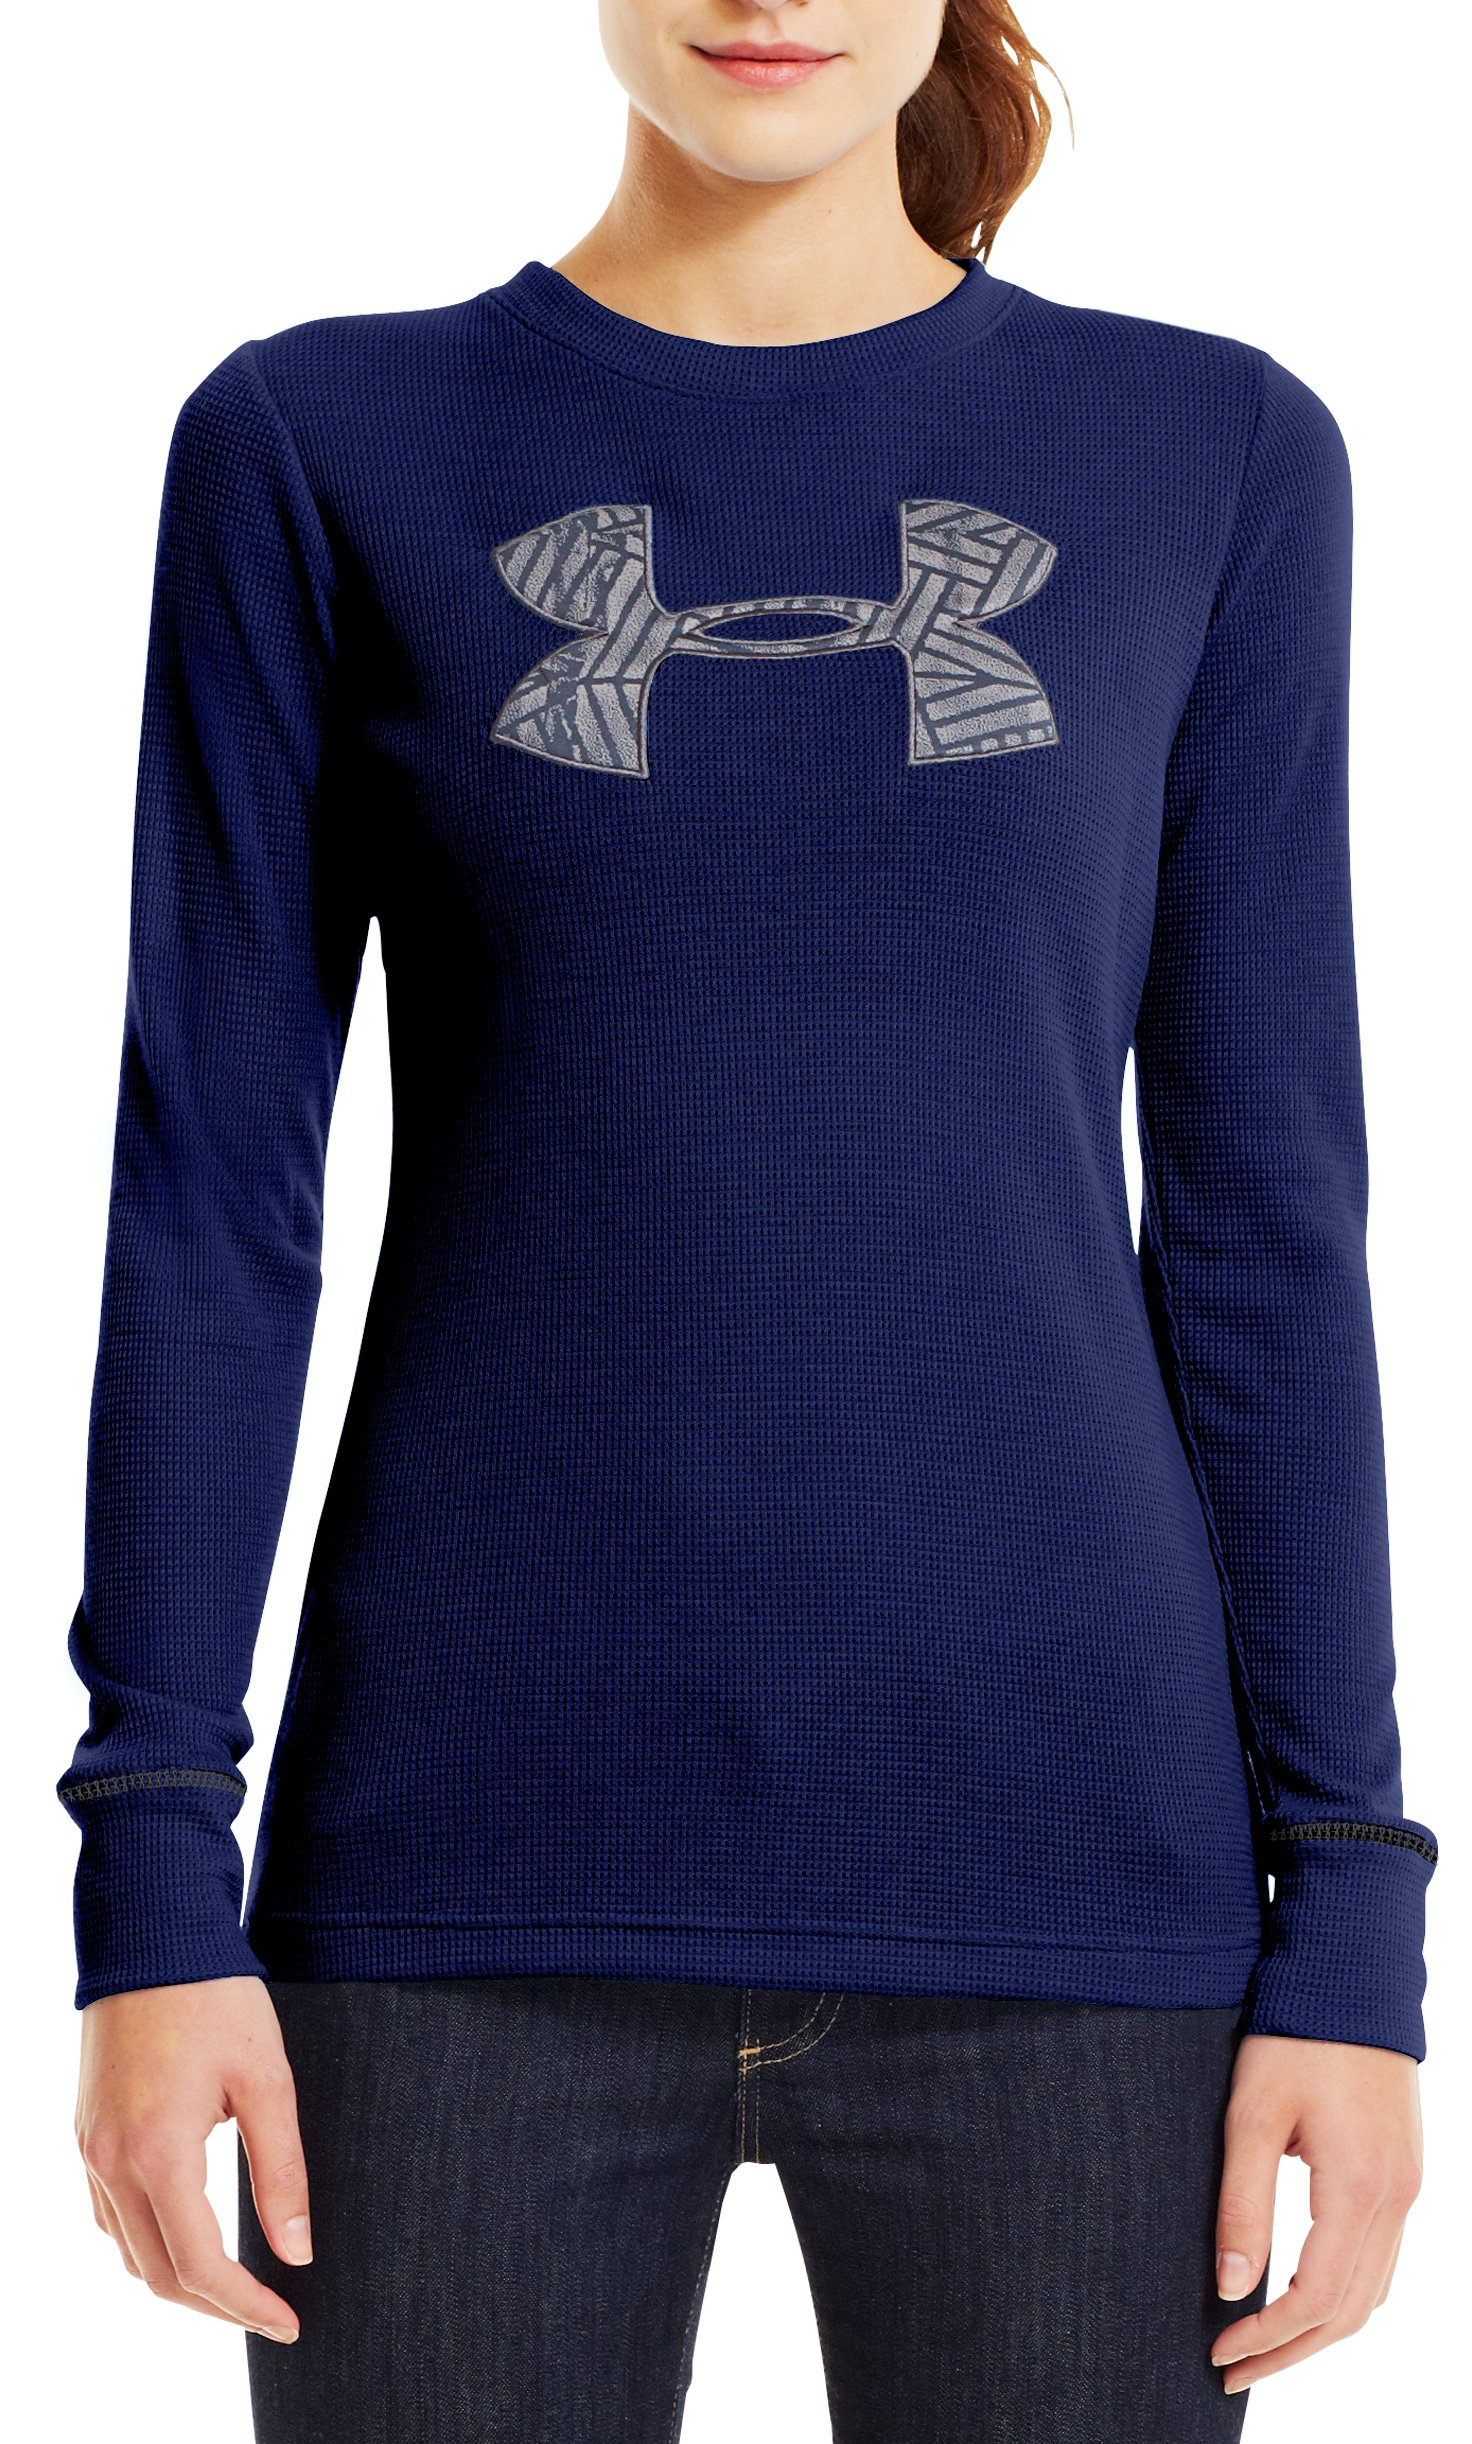 Women's Waffle Tackle Twill Long Sleeve Crew, REGAL, zoomed image